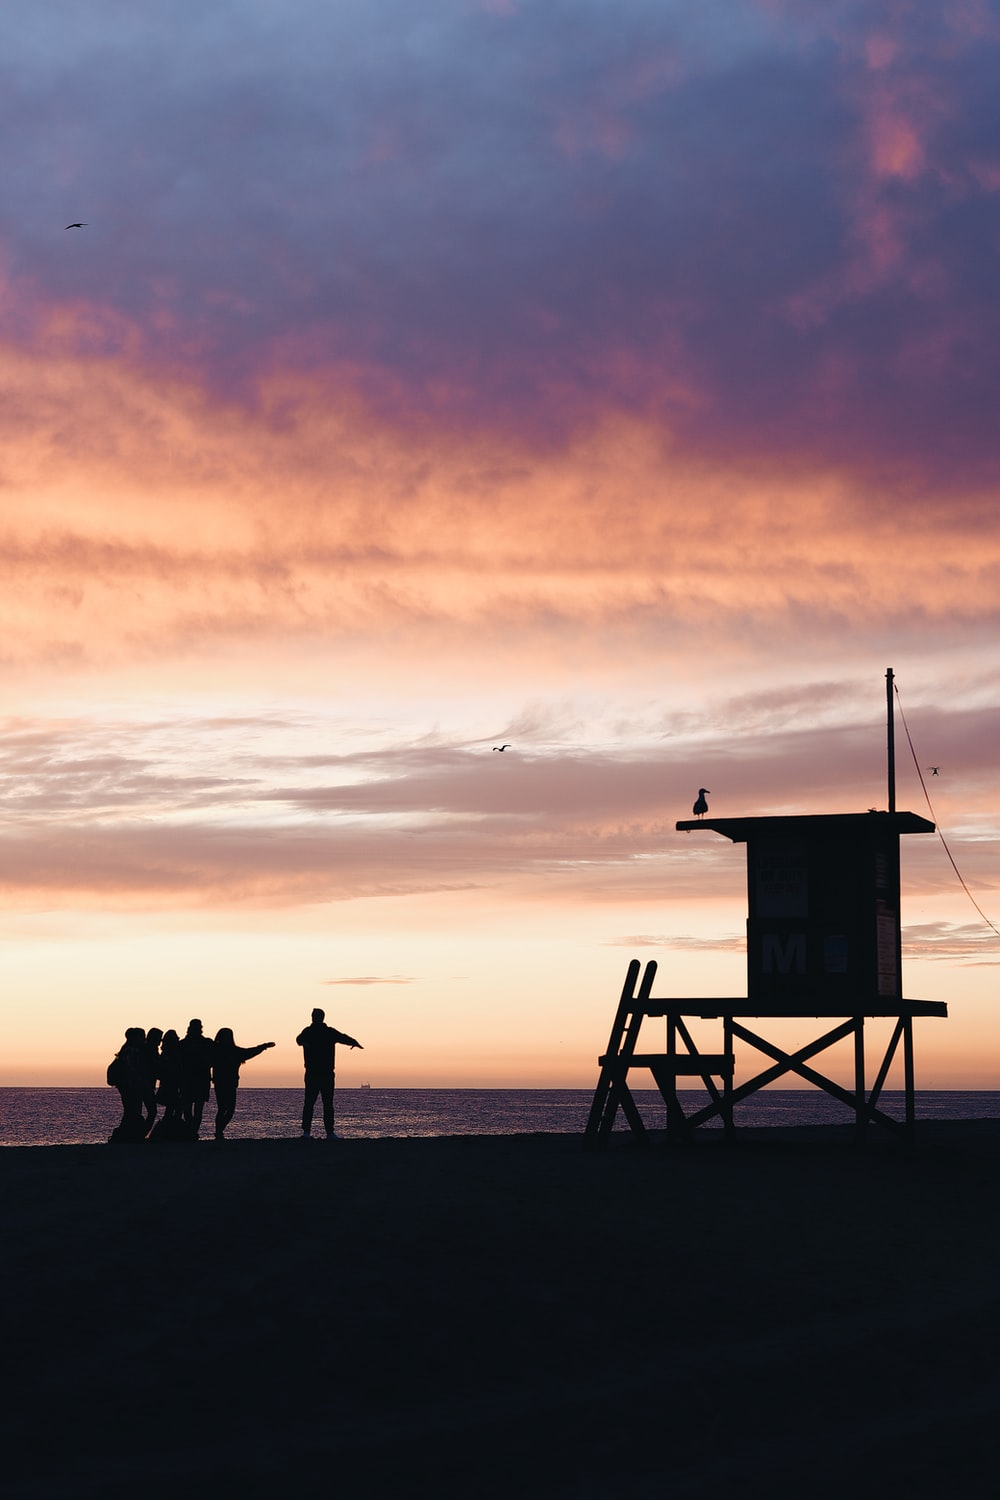 silhouette of people standing on beach during sunset